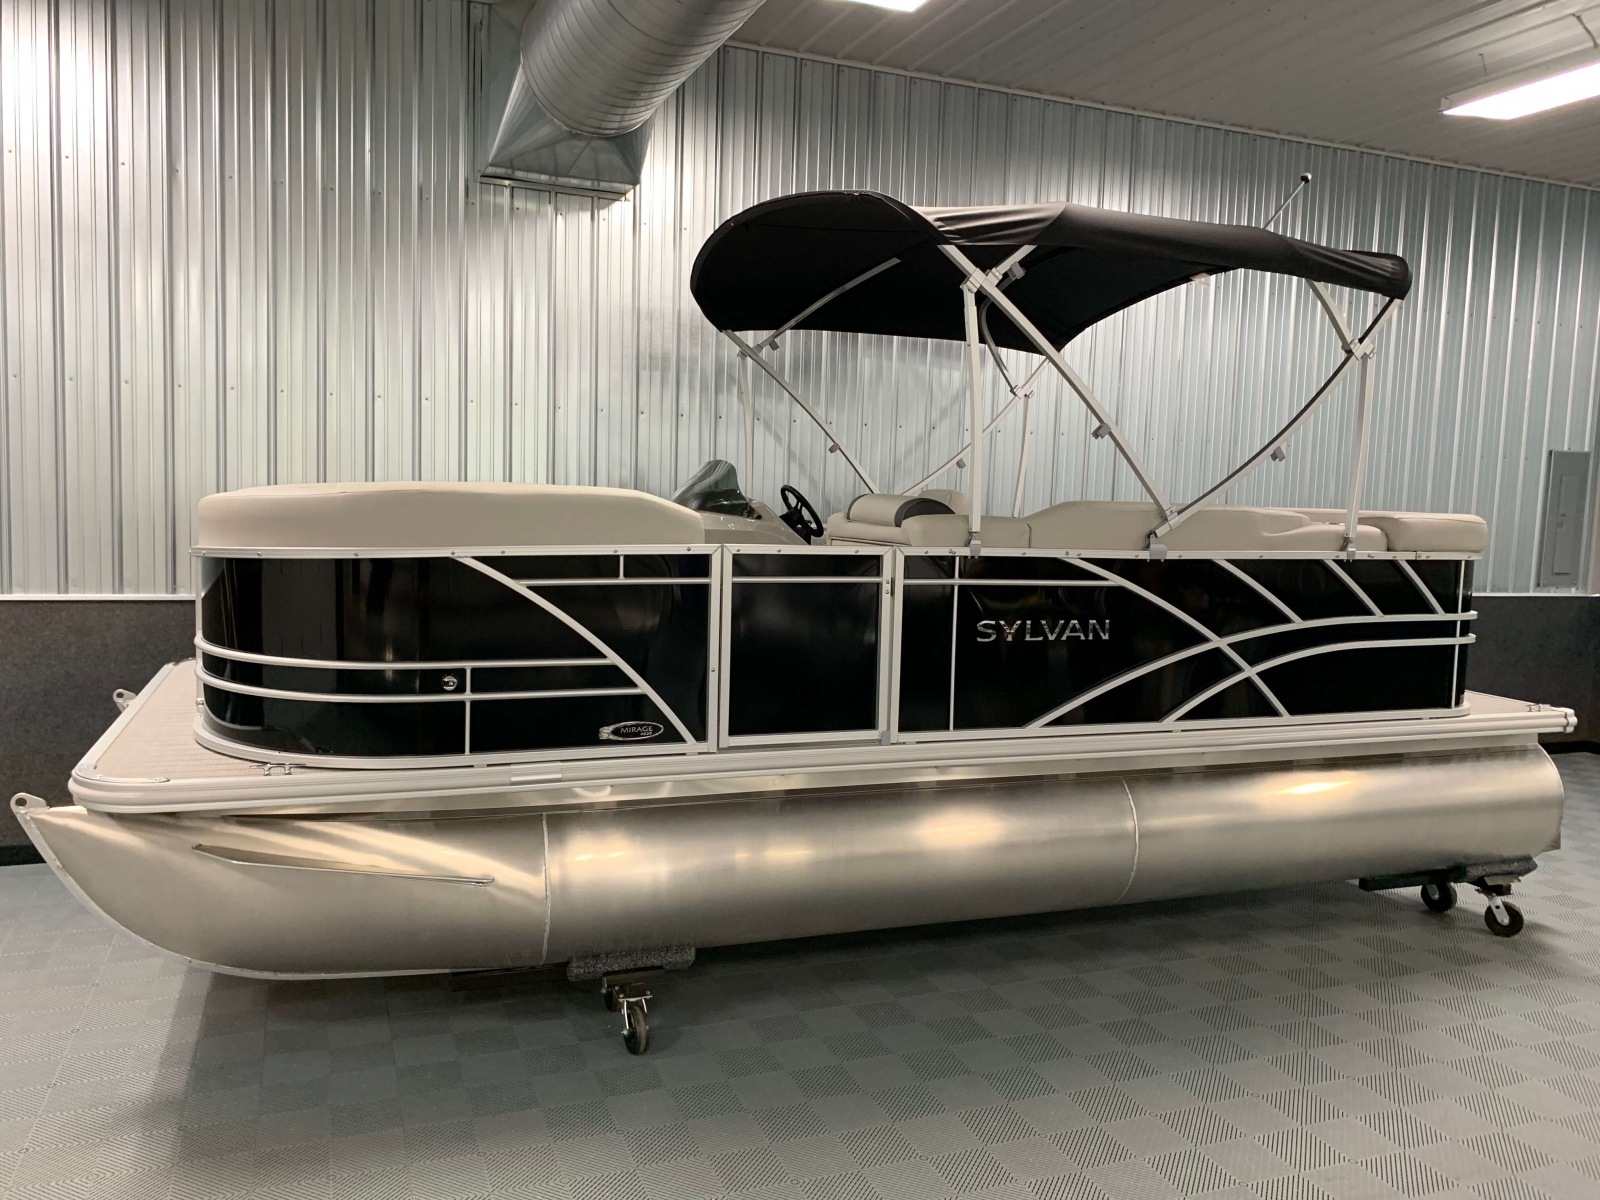 2020-Sylvan-Mirage-8520-Cruise-Black-Pontoon-Boat-4